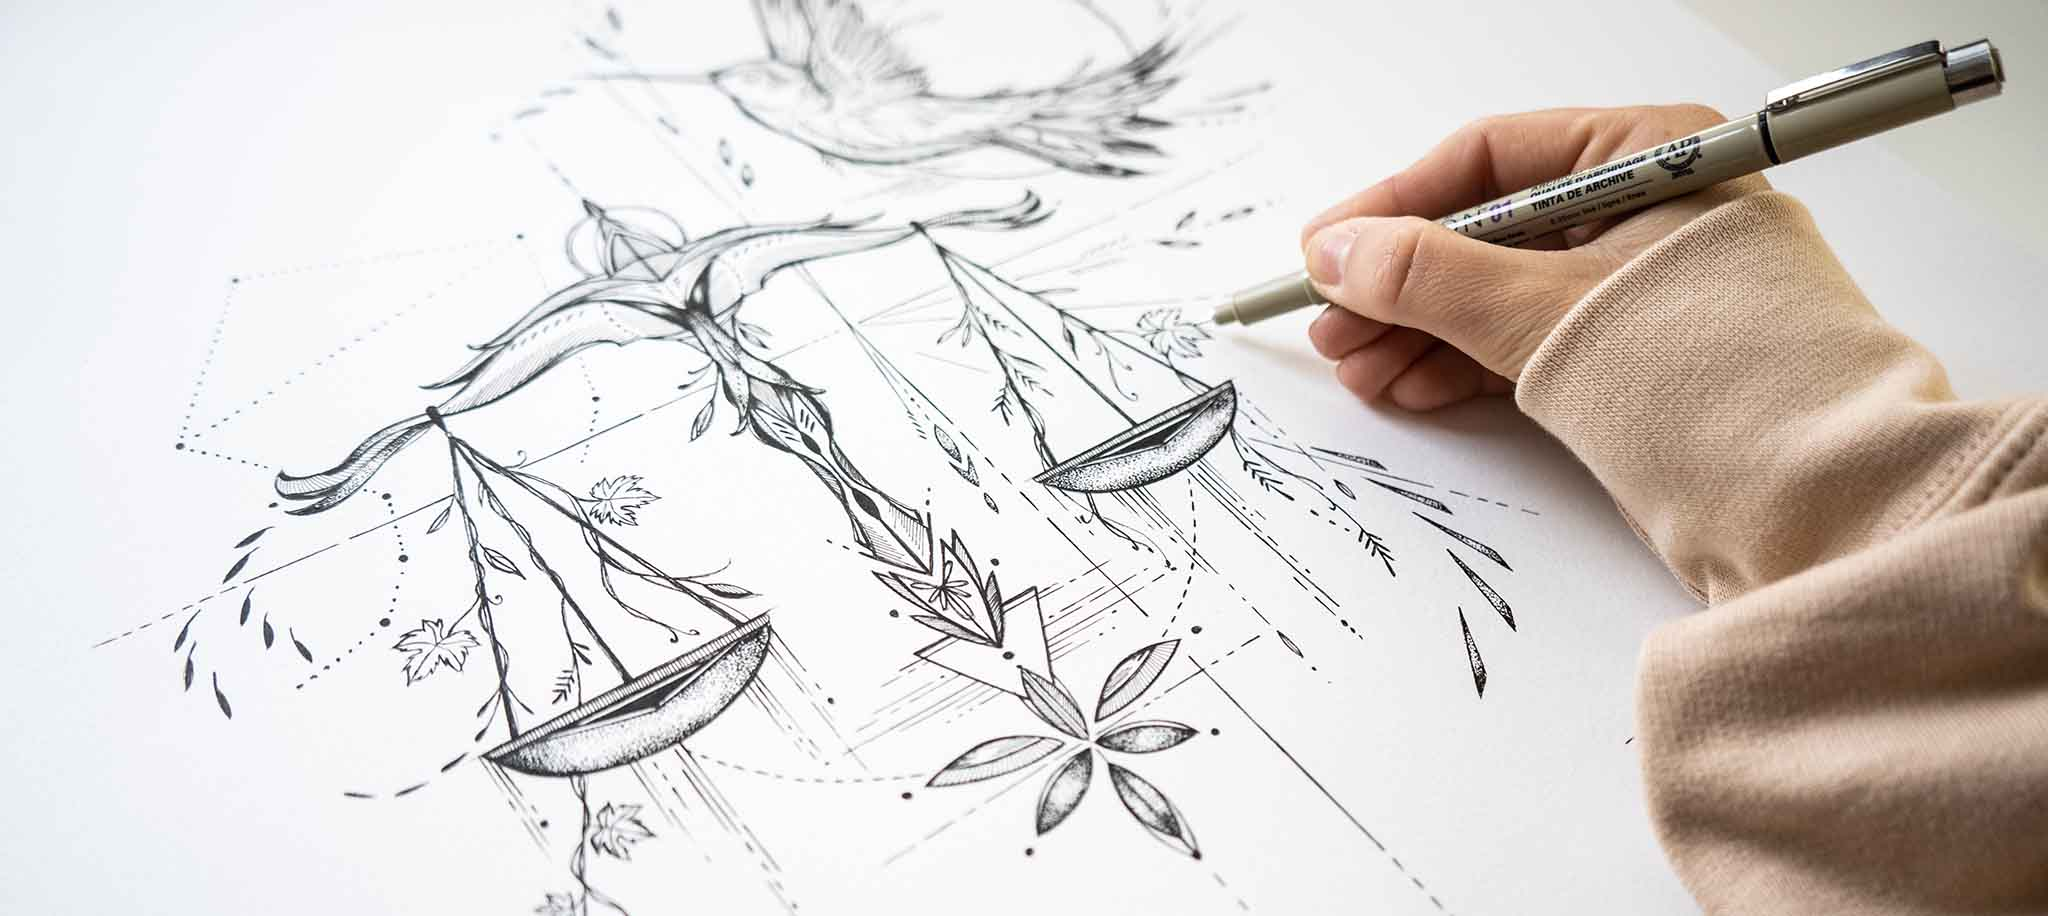 Deni Minar Drawing Artwork detail, wall art, prints, originals filled with nature elements and culture themes.